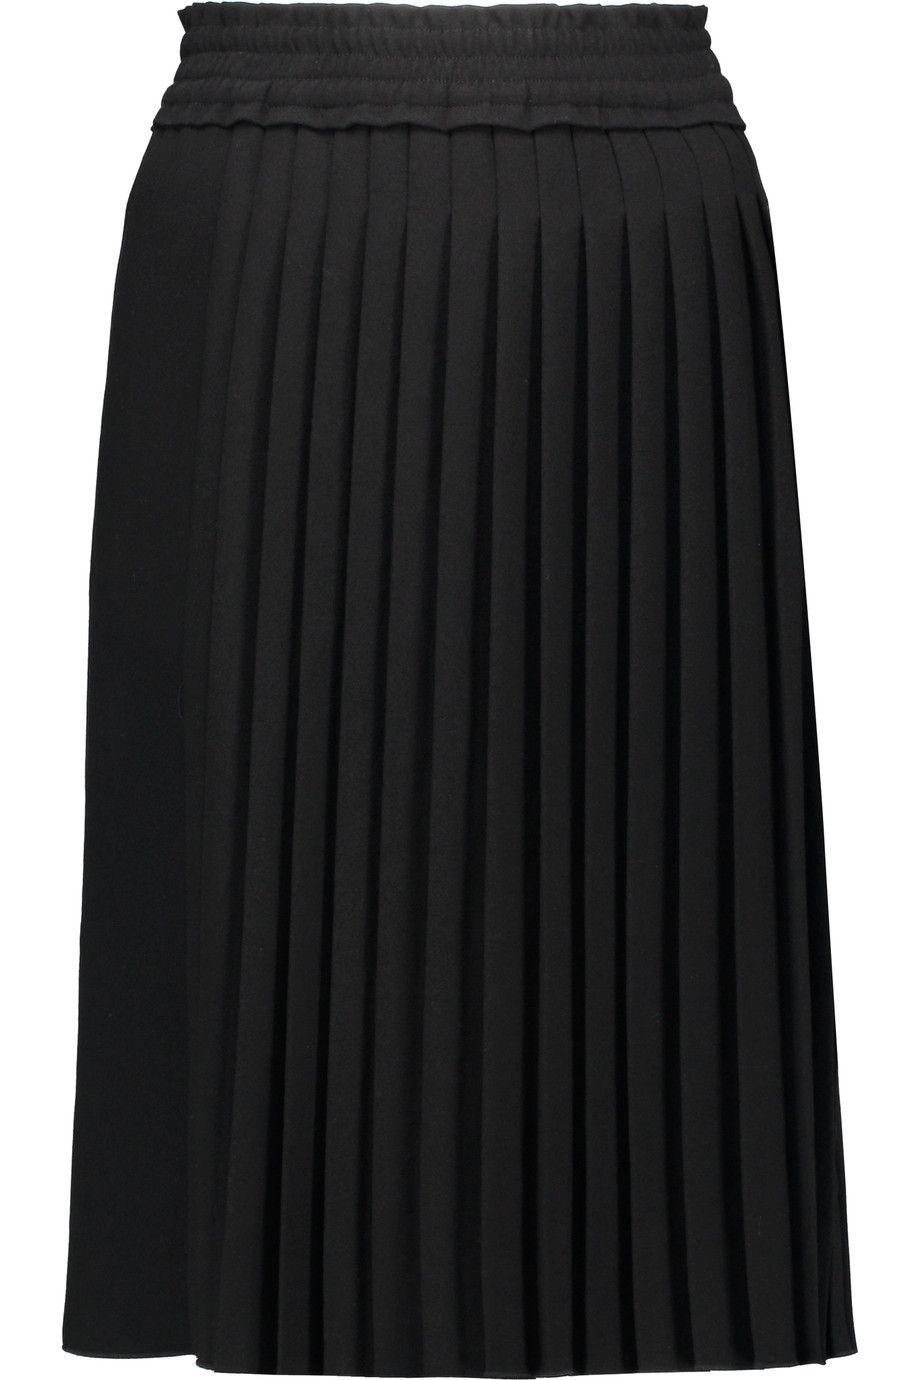 ETOILE ISABEL MARANT Mathilde pleated crepe skirt. #etoileisabelmarant #cloth #skirt